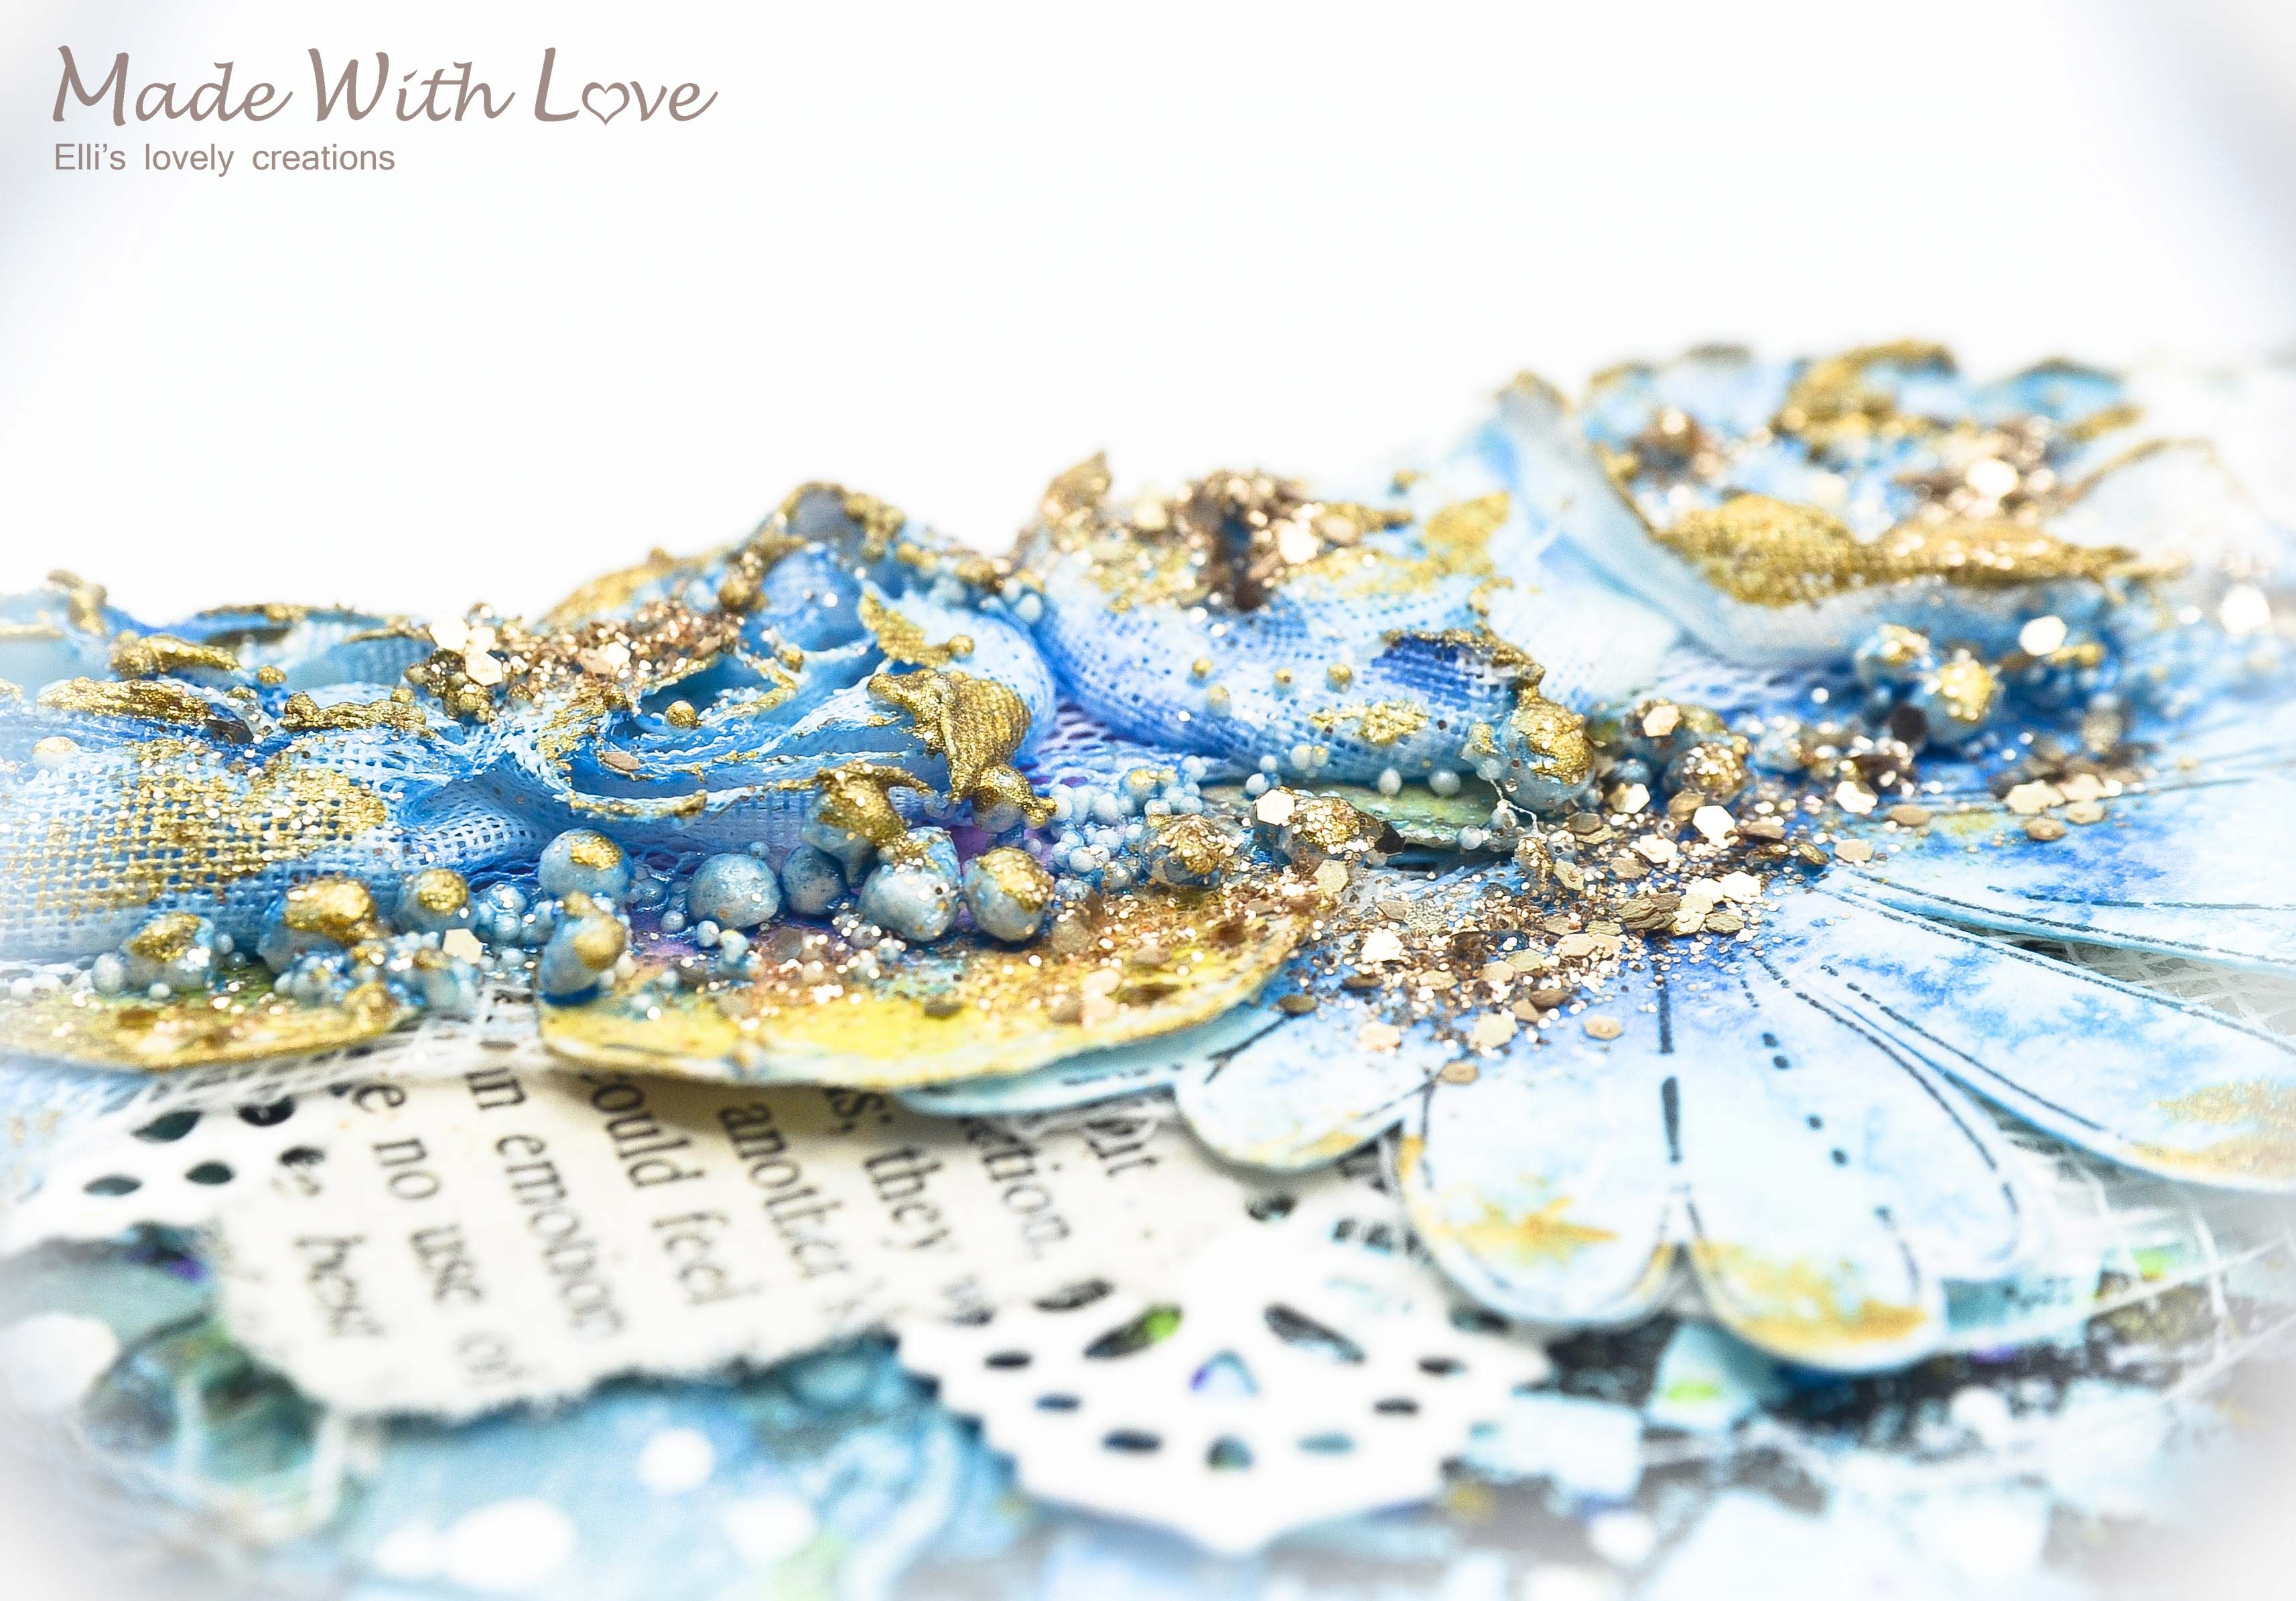 Mixed Media Summer Garden Wedding Album Cover Enjoy 0055